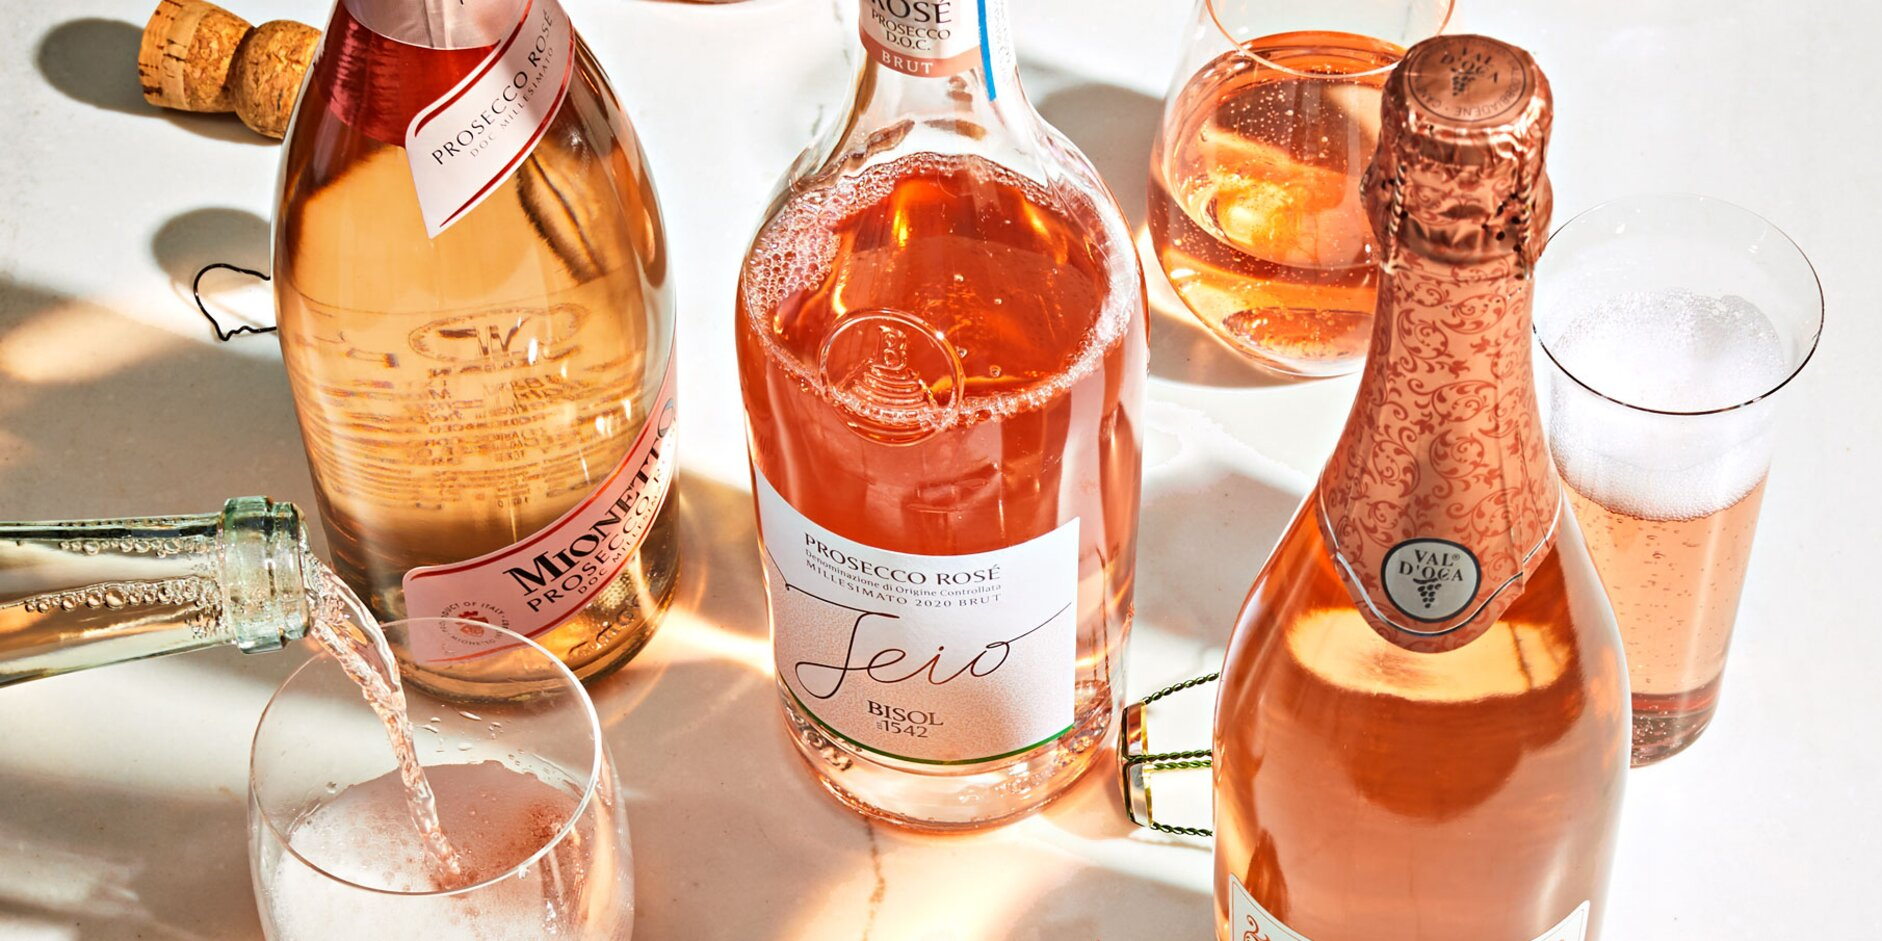 12 Sparkling Wines We're Loving This Summer